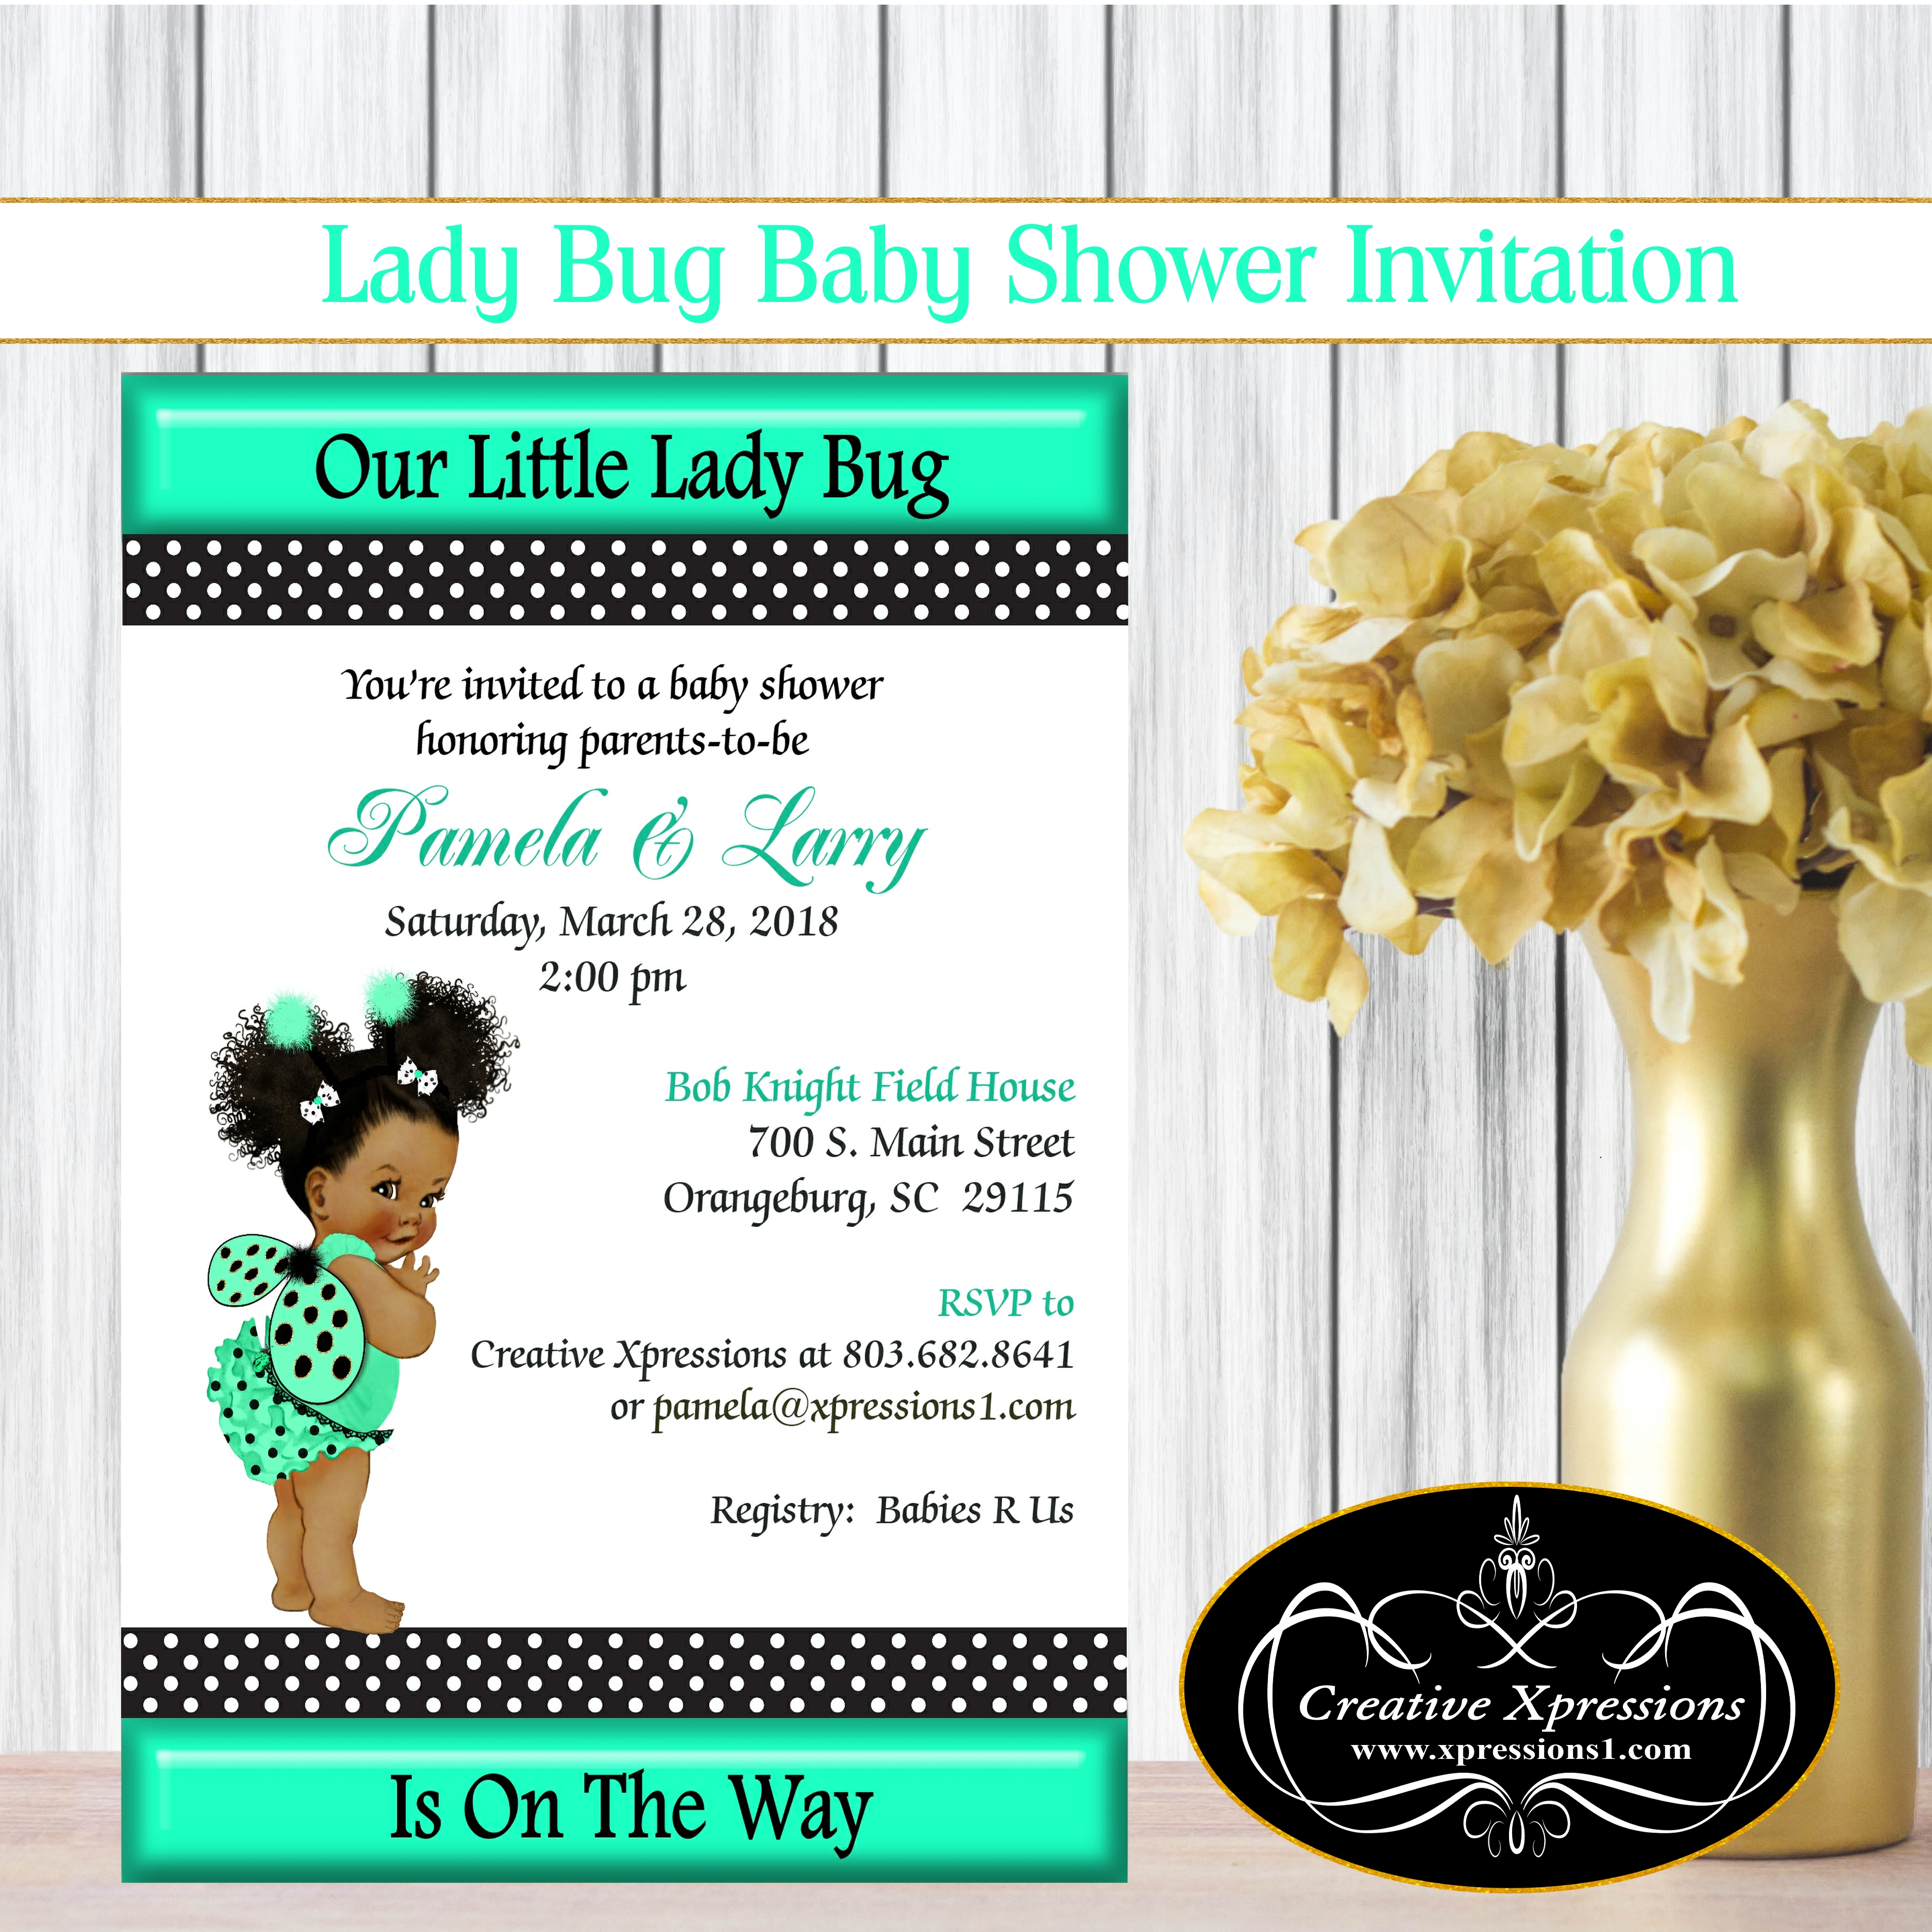 Ladybug in Black and Green Baby Shower Invitation